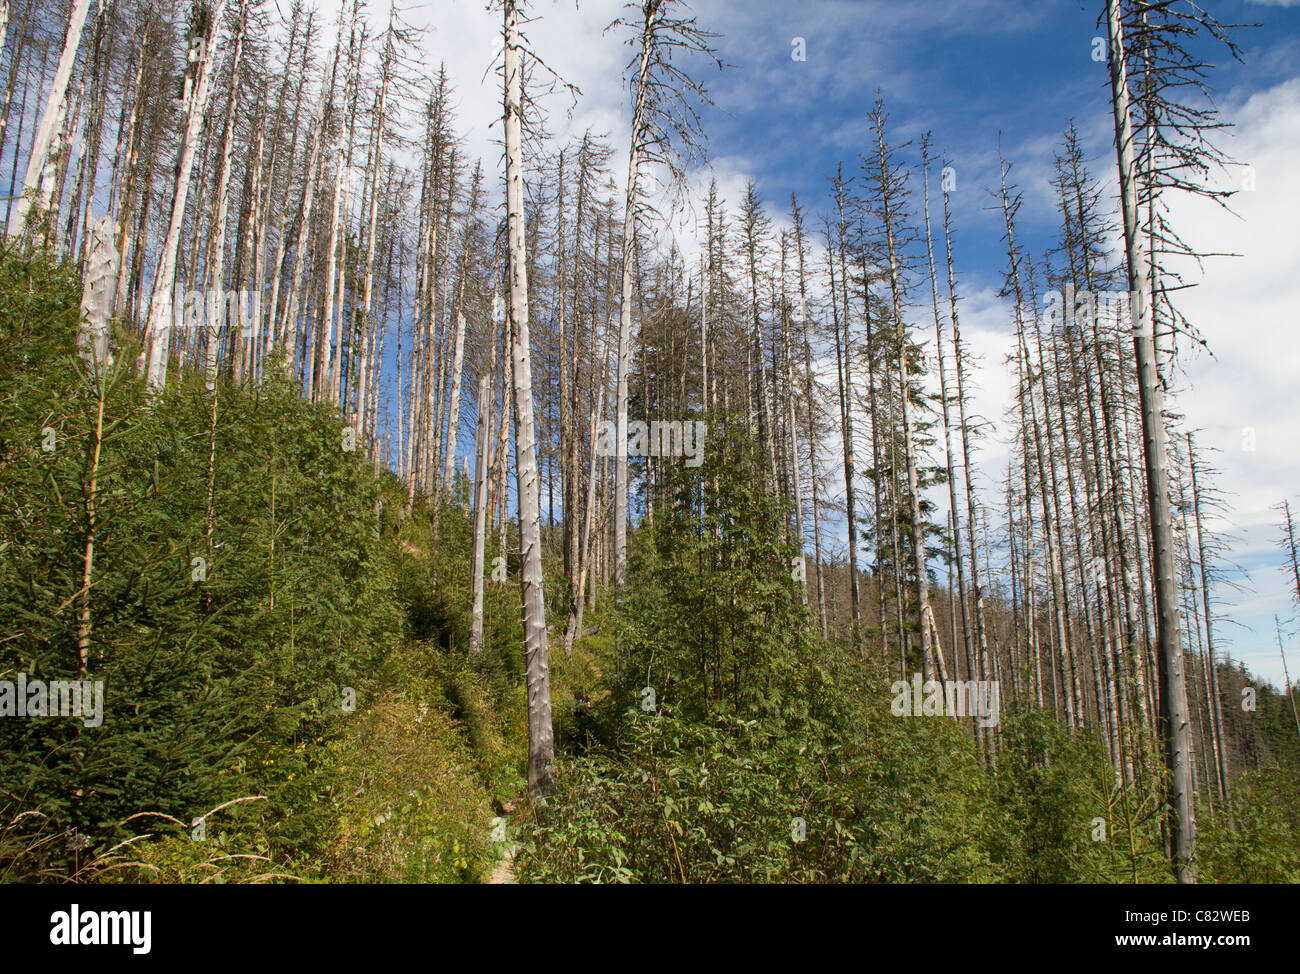 Norway spruce damaged by bark beetle. - Stock Image